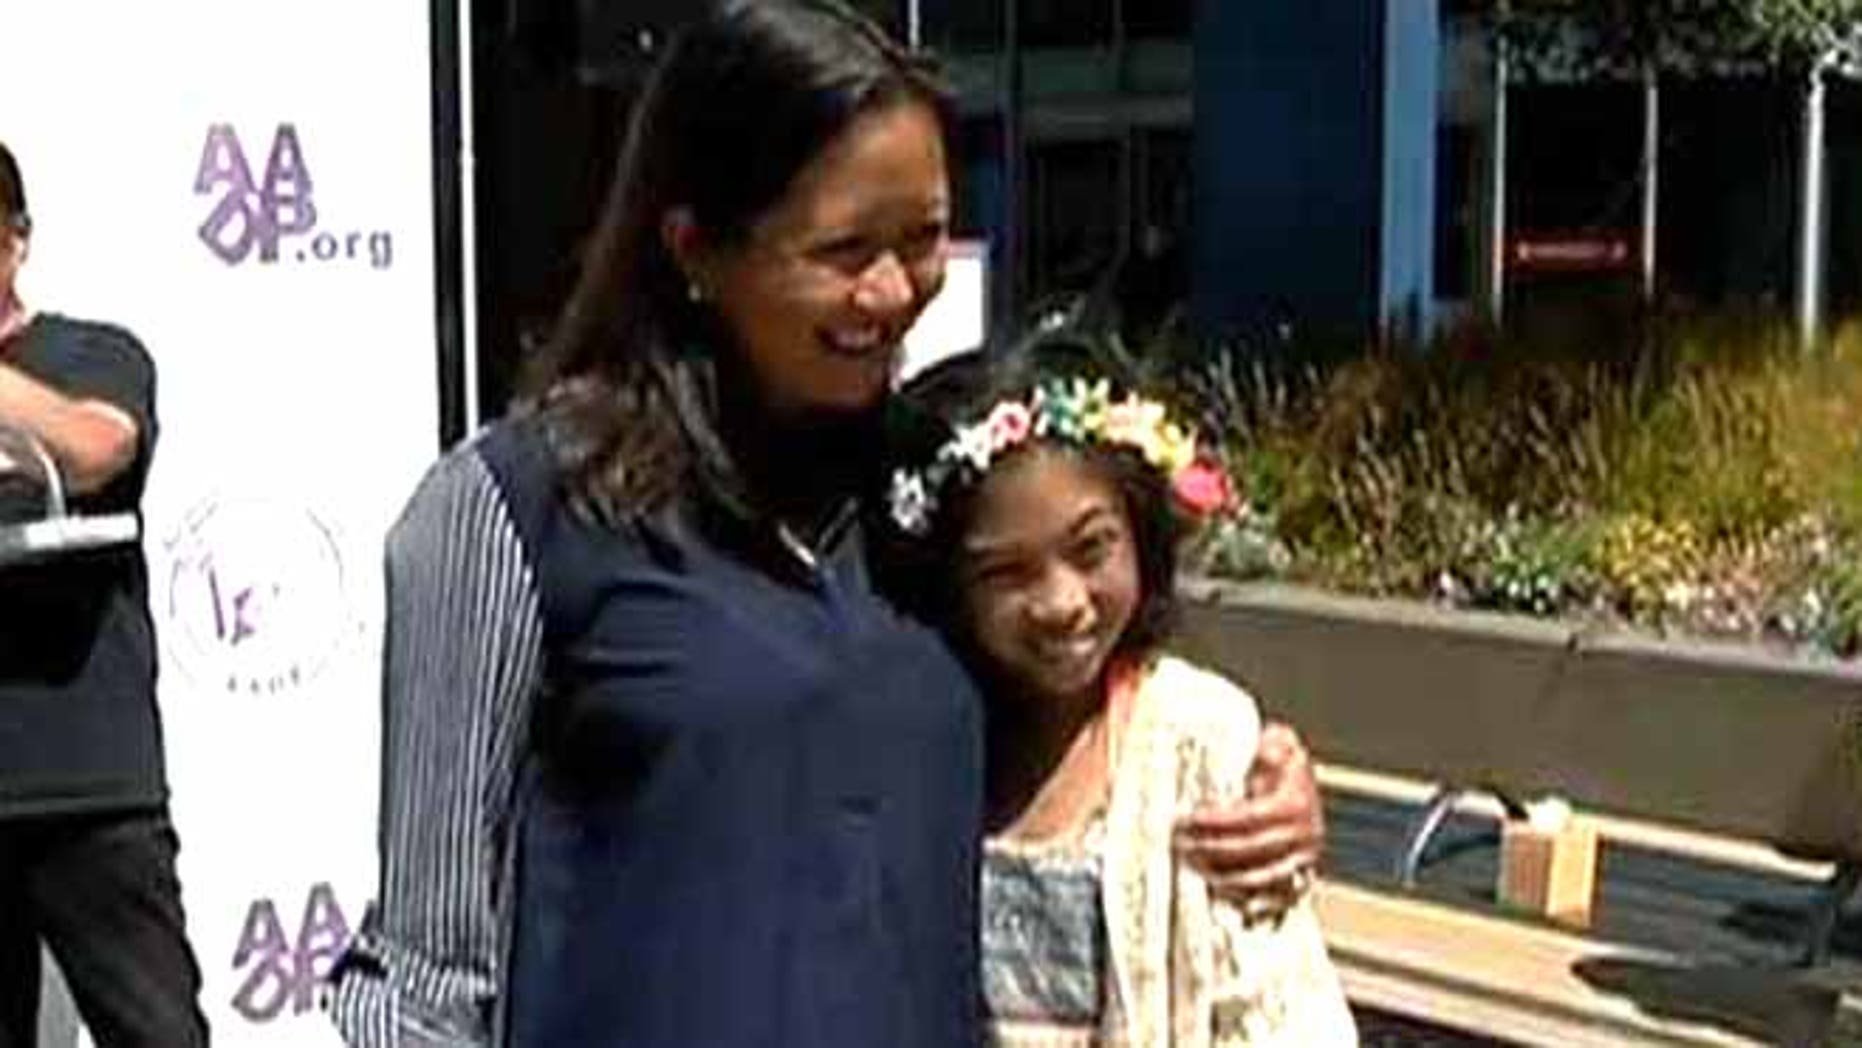 Kristine Sydney, left, was found to be a bone marrow match for Mailyna Mayate, right.